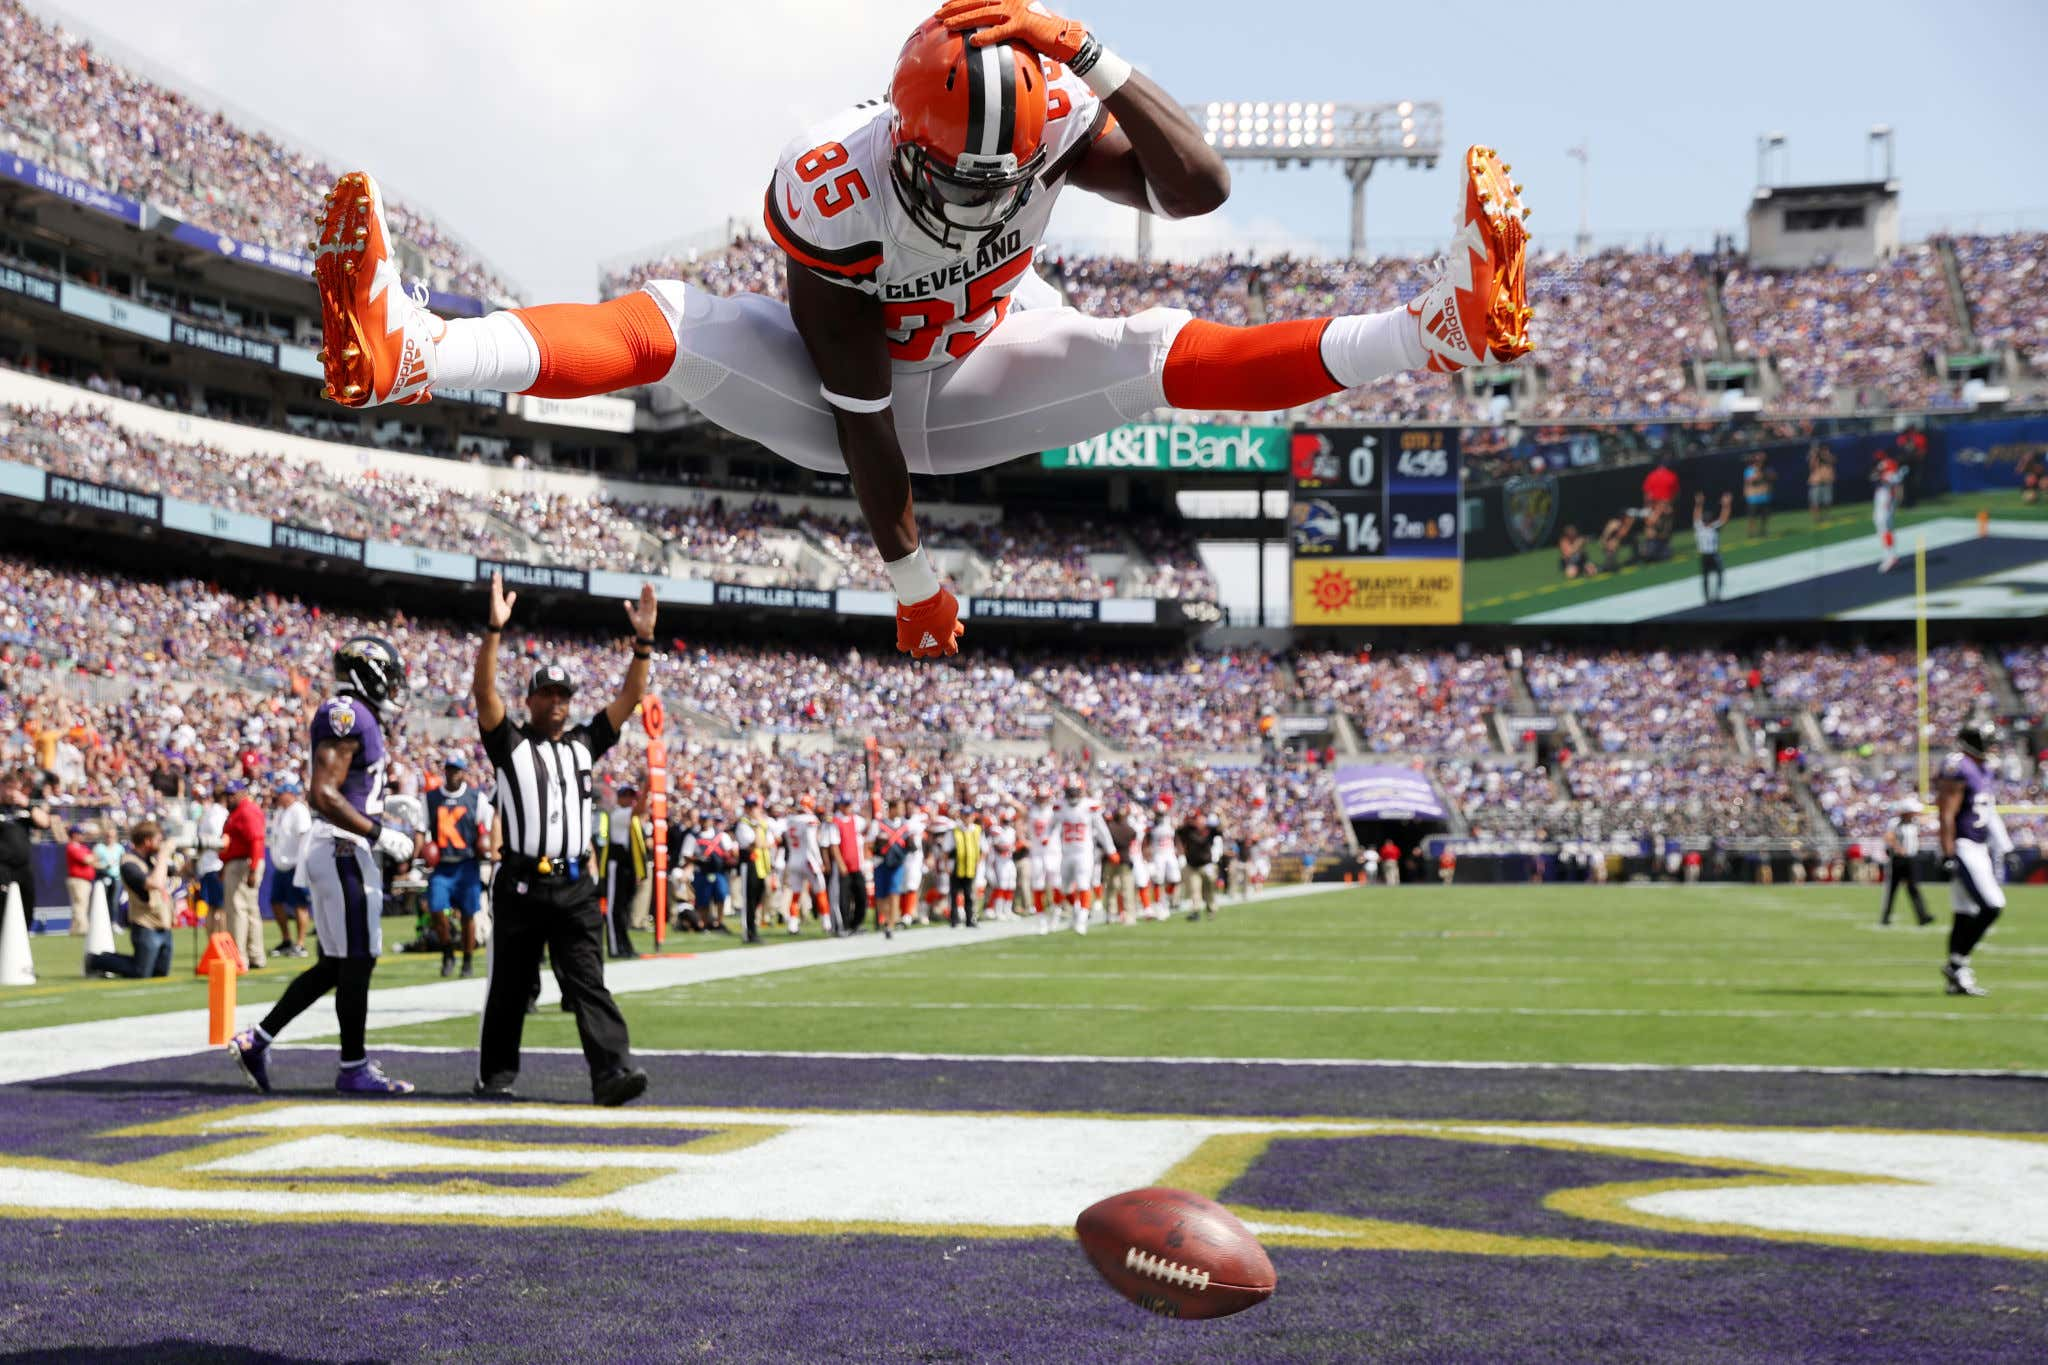 BALTIMORE, MD - SEPTEMBER 17: Tight end David Njoku #85 of the Cleveland Browns celebrates his touchdown against the Baltimore Ravens in the second quarter at M&T Bank Stadium on September 17, 2017 in Baltimore, Maryland. (Photo by Rob Carr /Getty Images)